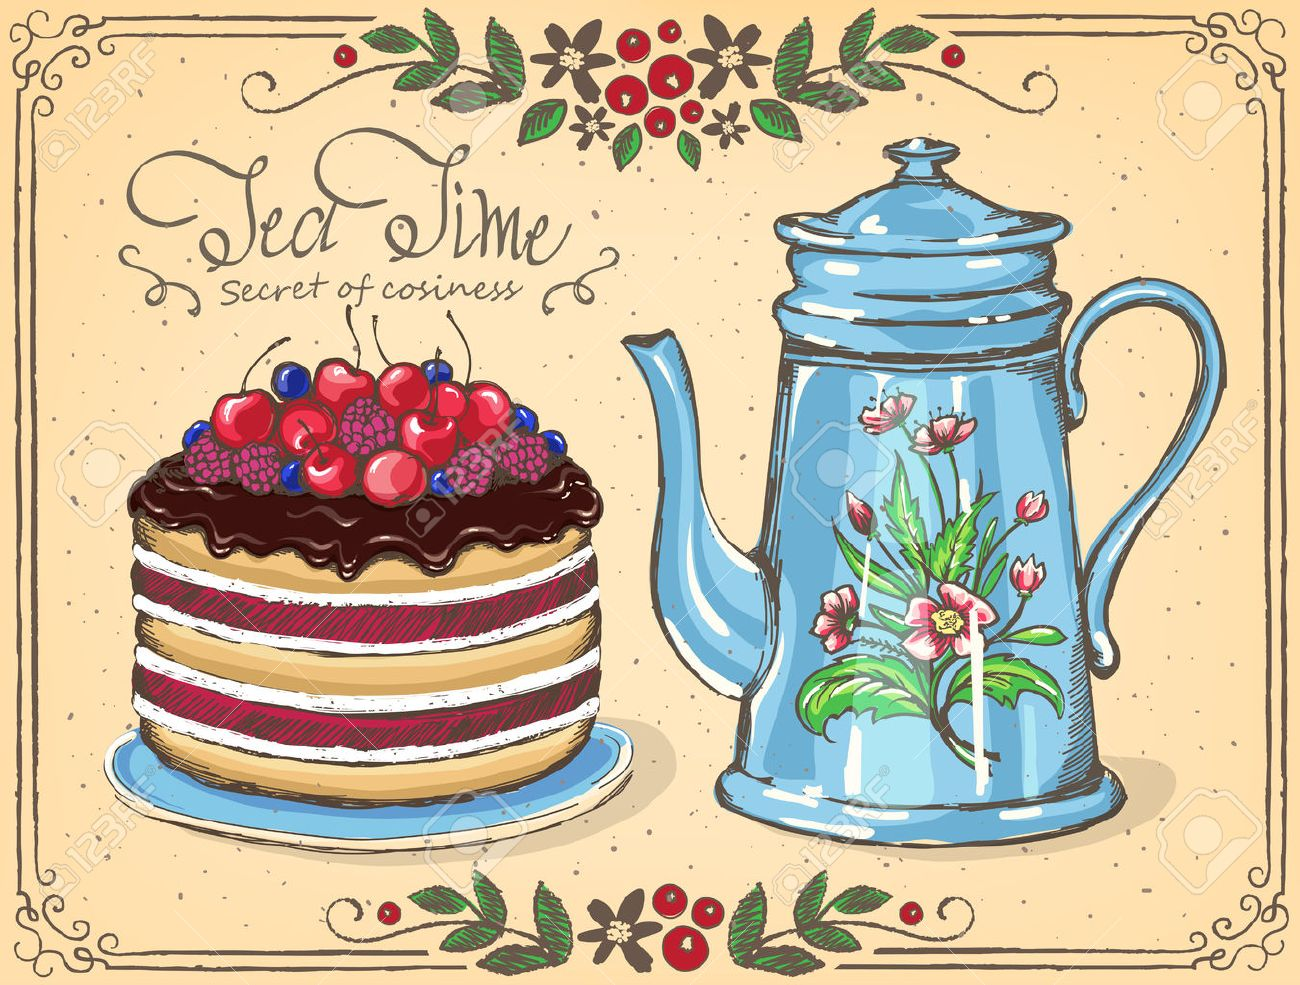 Illustration Tea Time with Berry cake and teapot. floral frame. sketch. Inspiration card for birthday party, tea party - 56833595